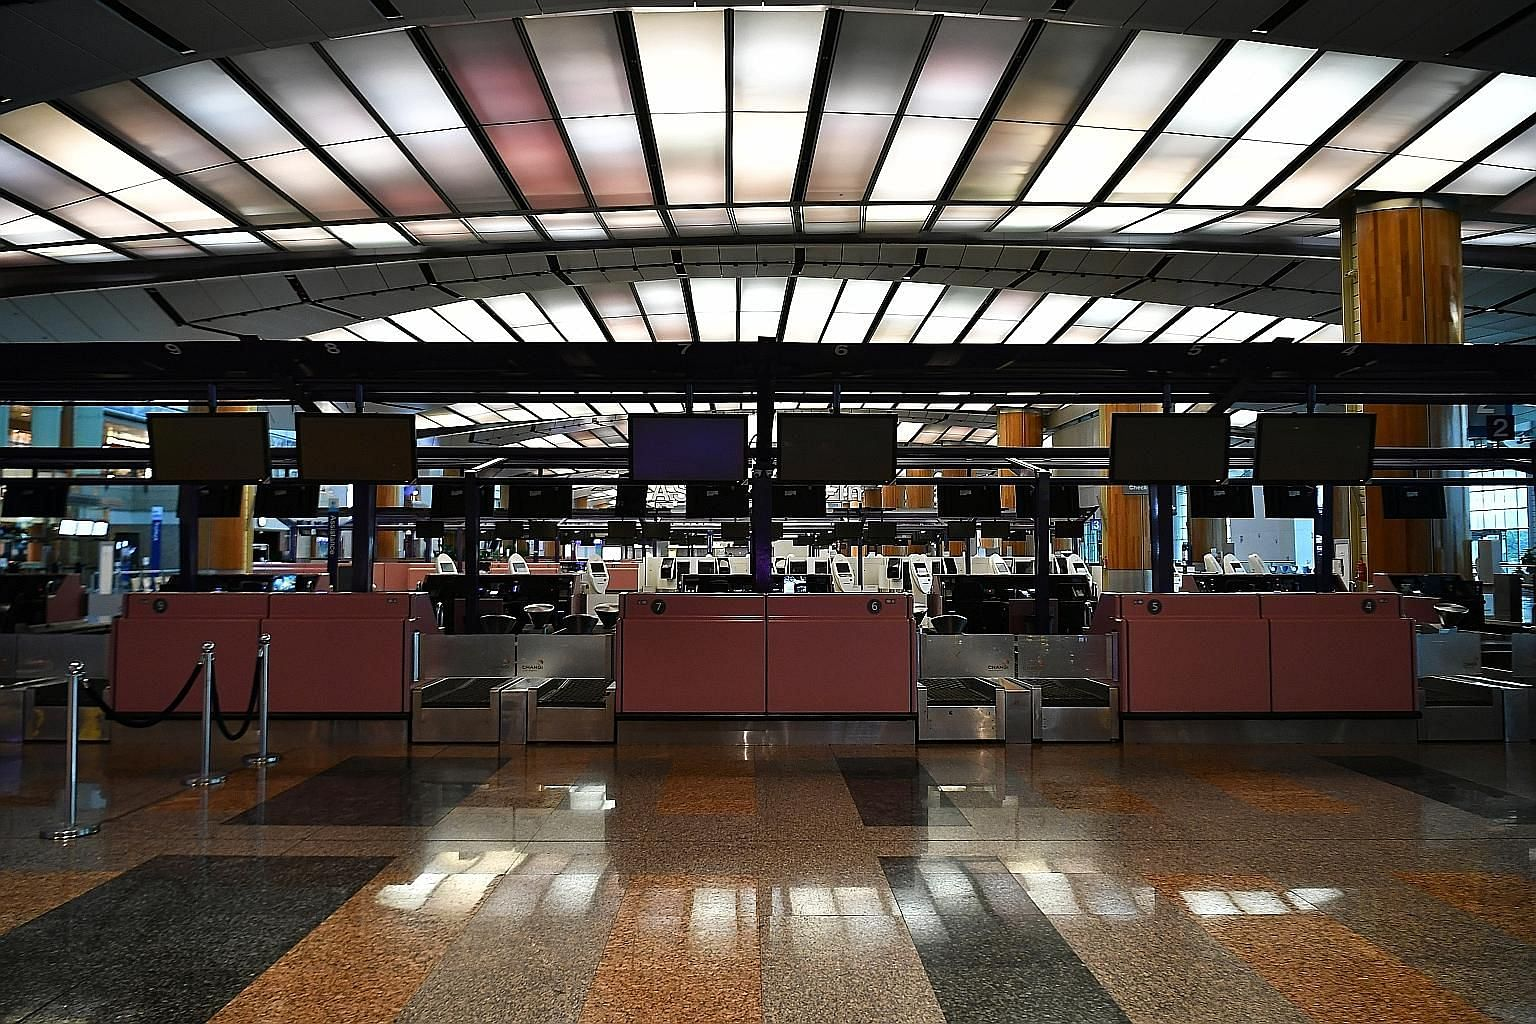 Empty check-in counters at Changi Airport Terminal 2 last week. The number of visitors to Singapore plummeted to about 240,000 in March, the lowest since the Sars outbreak. ST PHOTO: LIM YAOHUI